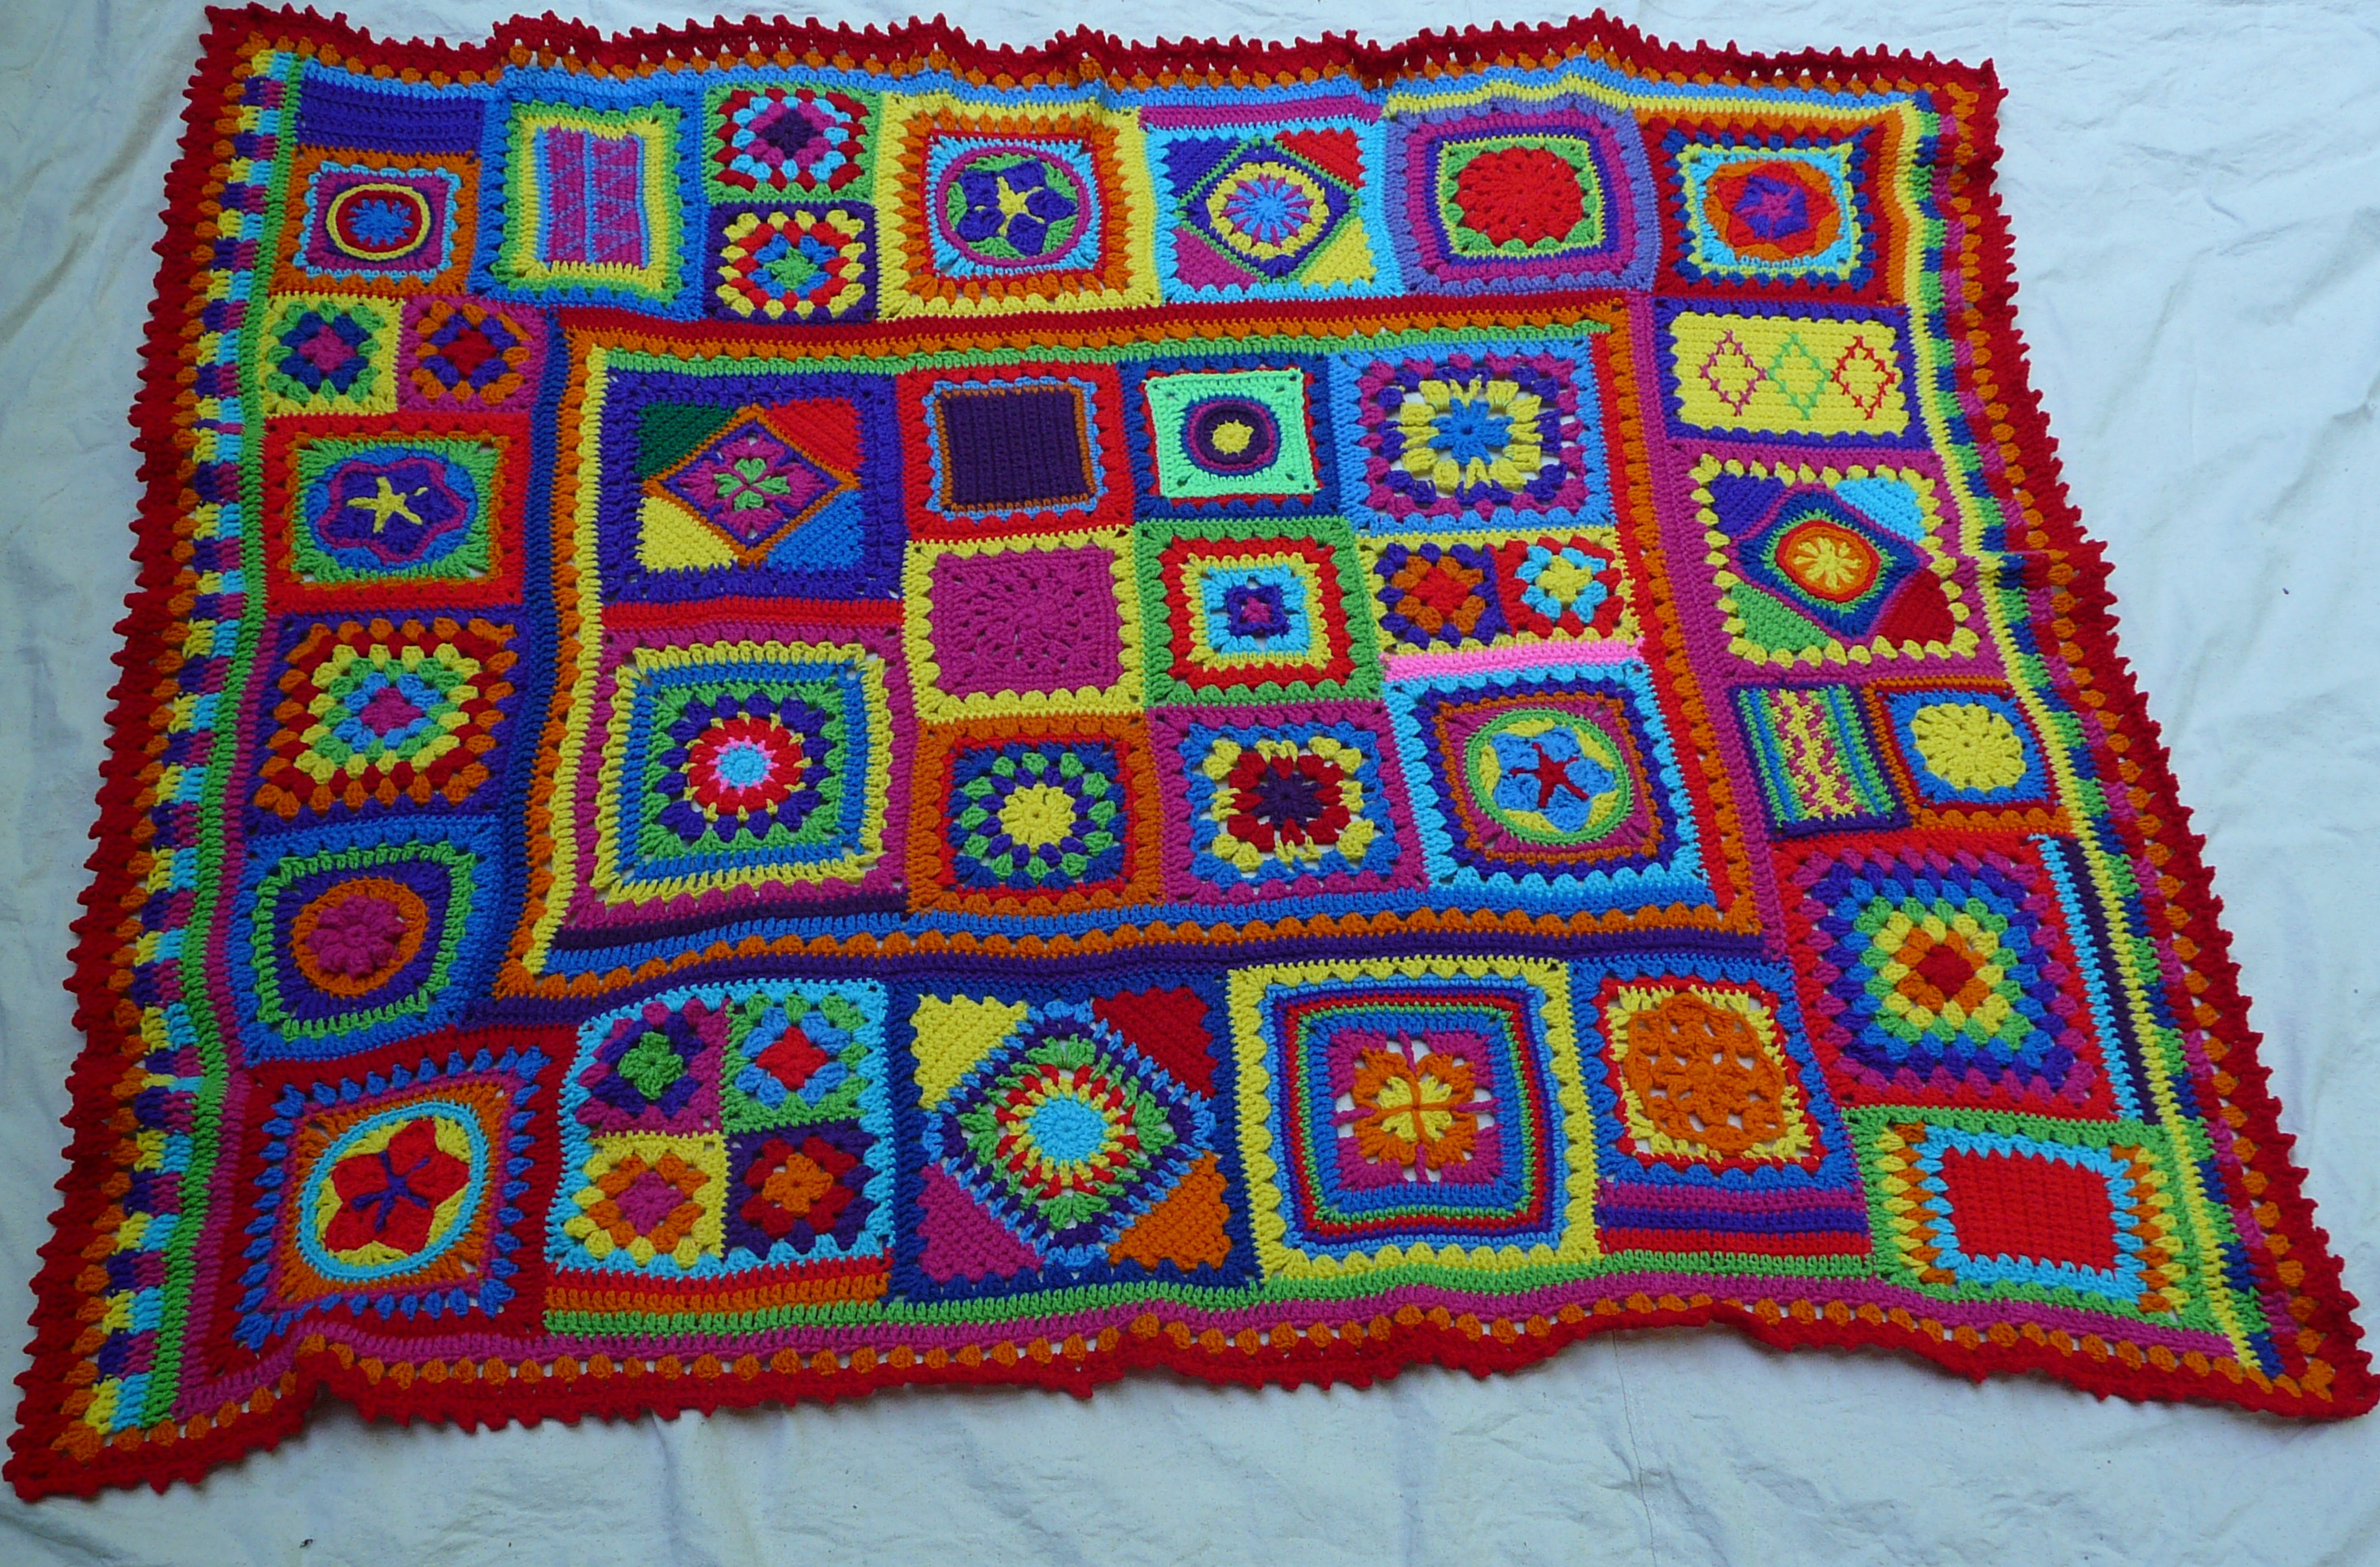 Granny Square Afghan Awesome Omg I Finished the Afghan that Has Eluded Me Crochetbug Of Adorable 50 Pics Granny Square Afghan